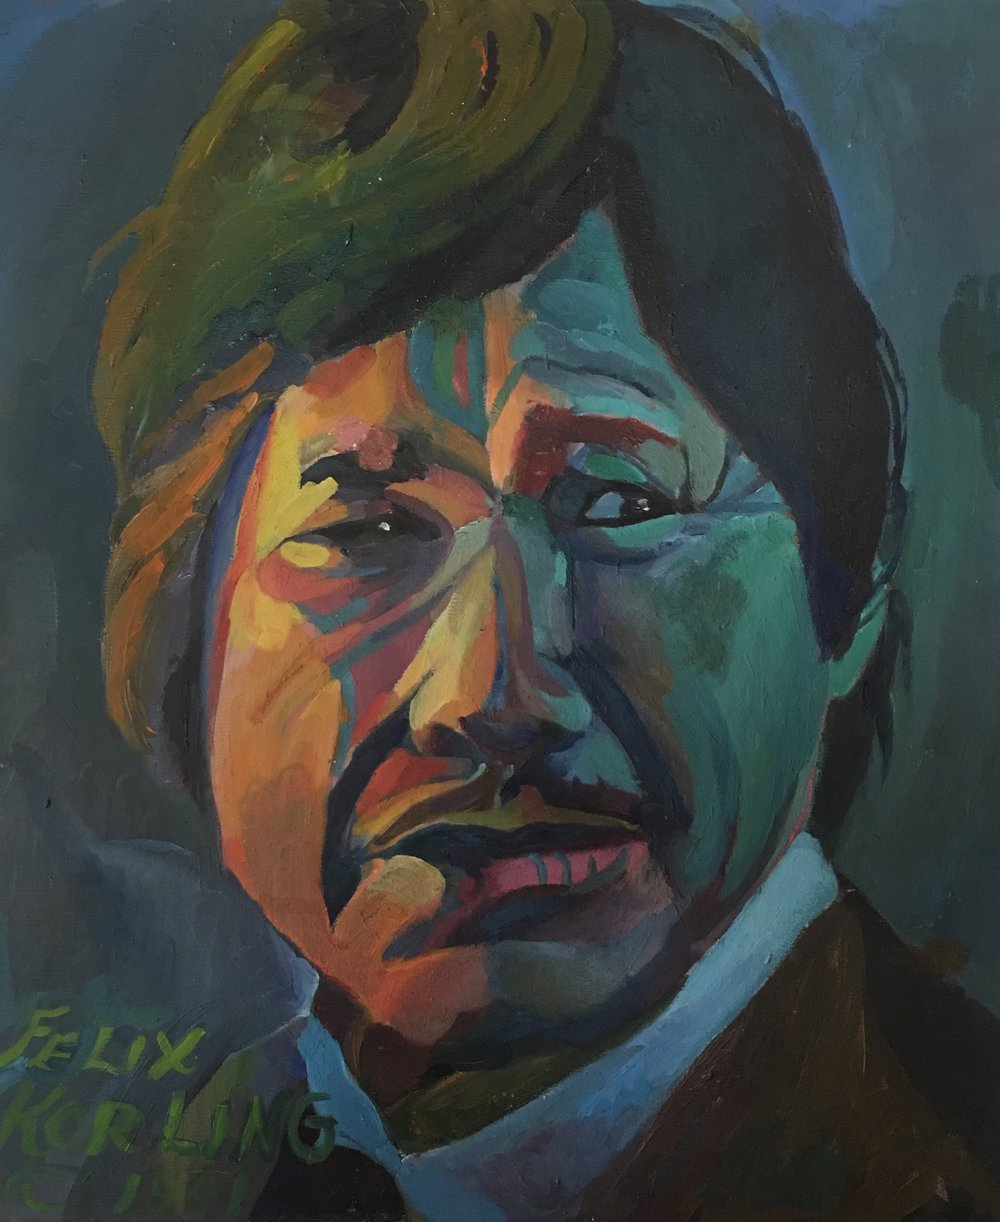 Charles Bronson   20x24 oil on canvas